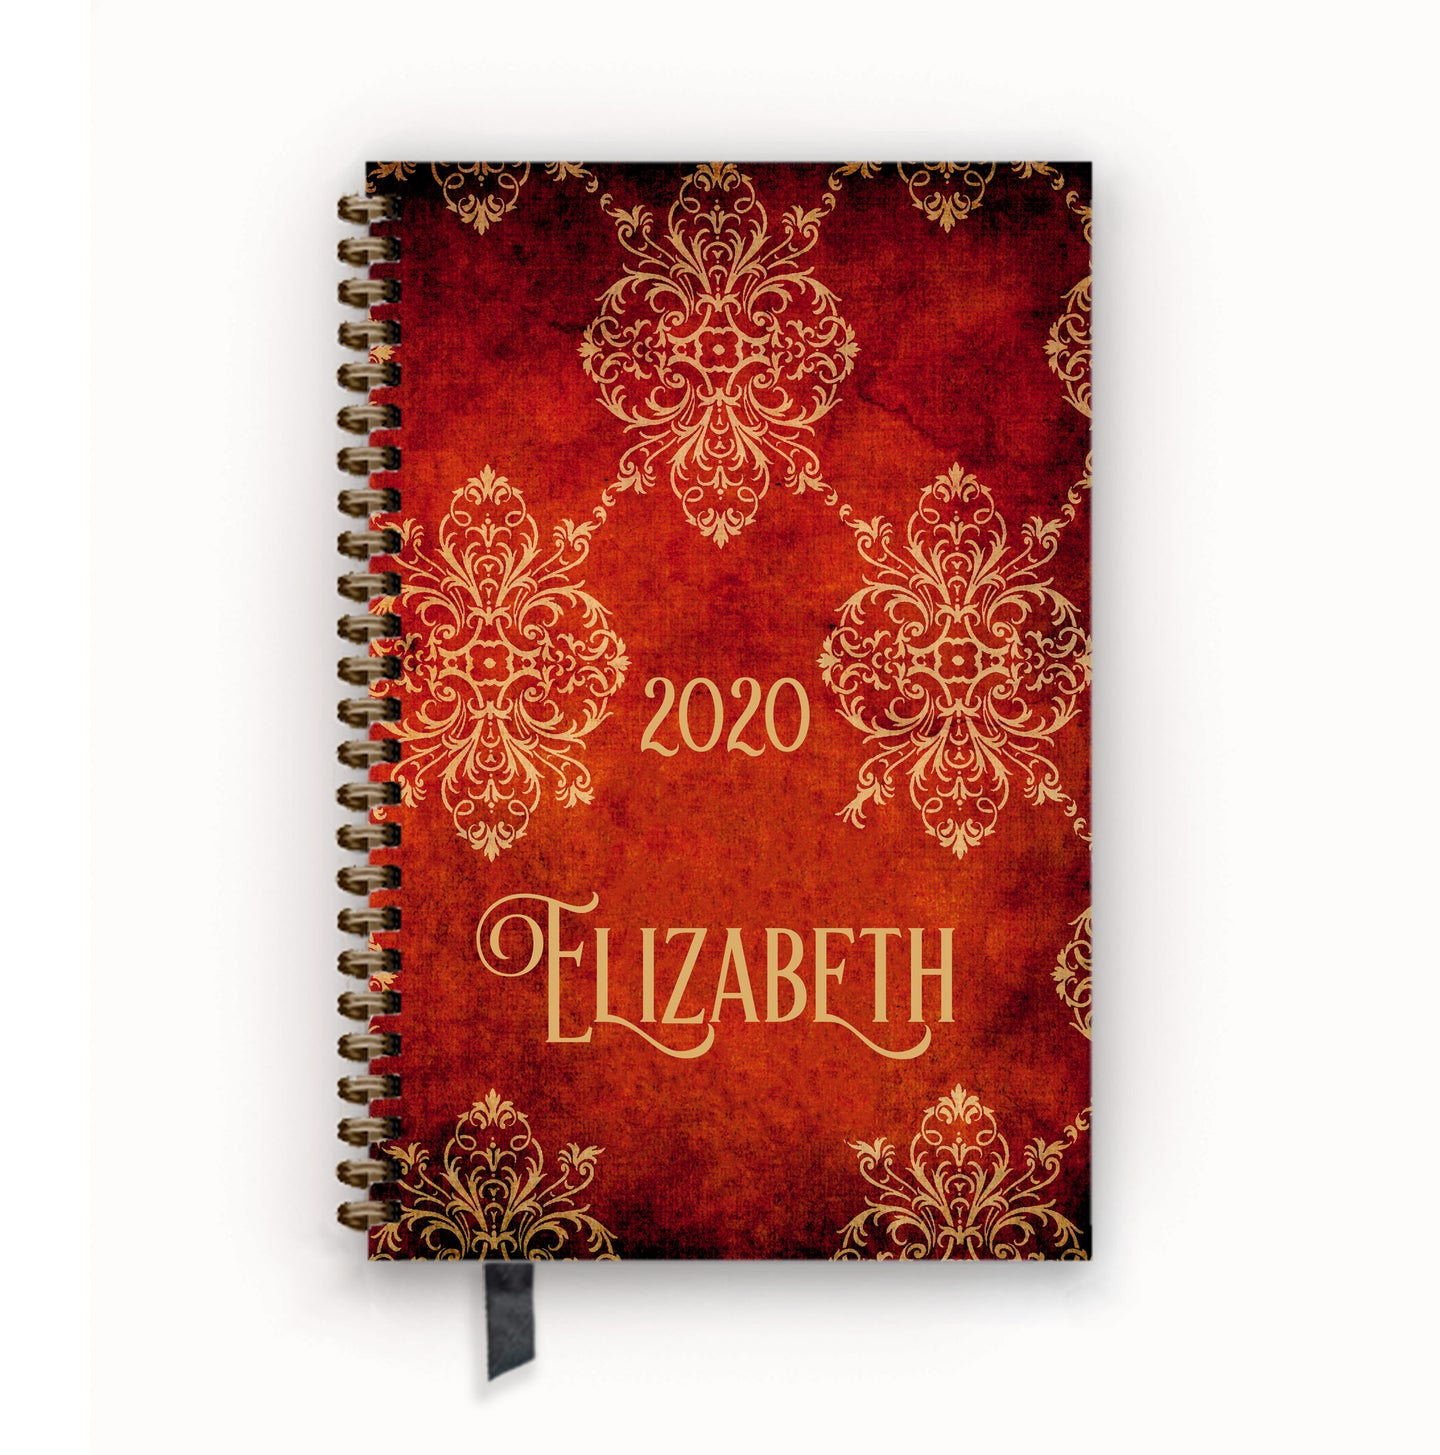 2020 FlexPad Personalized Planner Gothic Red Vintage Damask